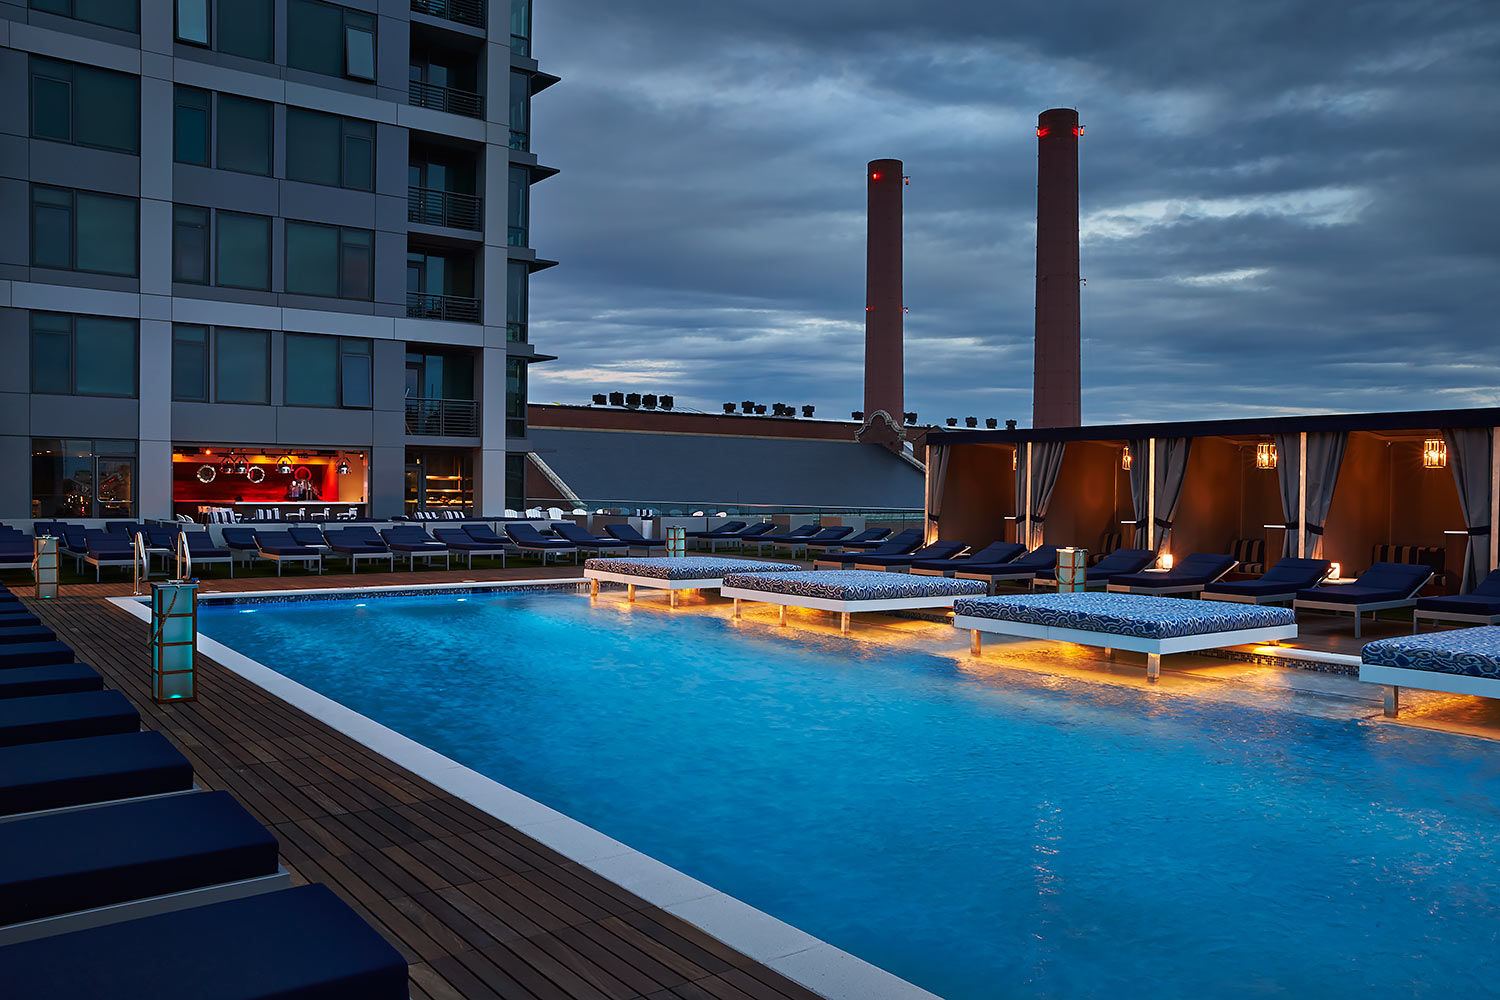 ARCHITECTURE-Retail29-VIDA-Pool-night